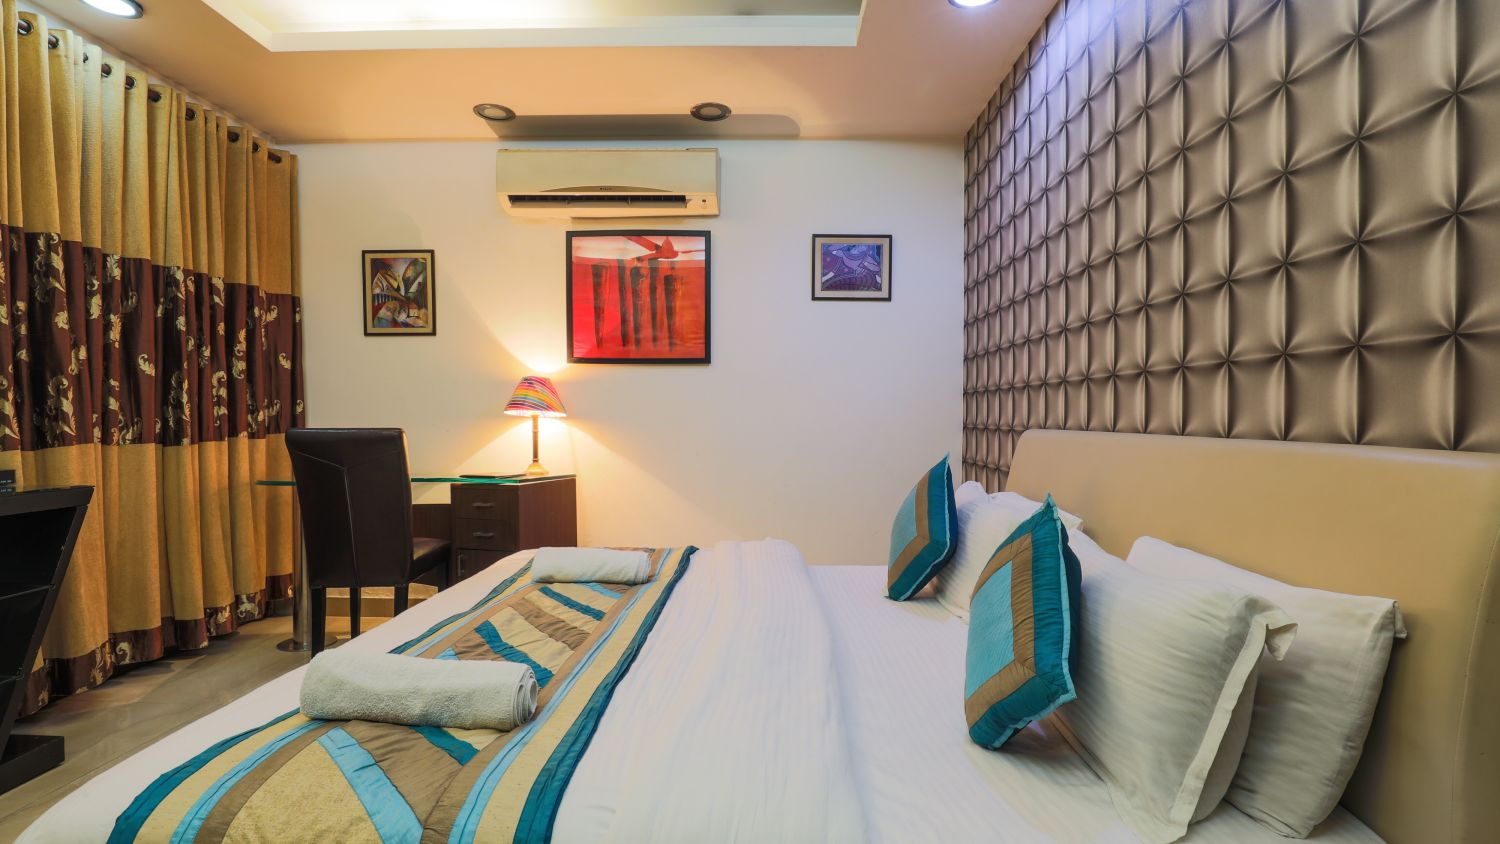 Rooms at The Hermitage Hotel (By Cosy Hotels), New Delhi